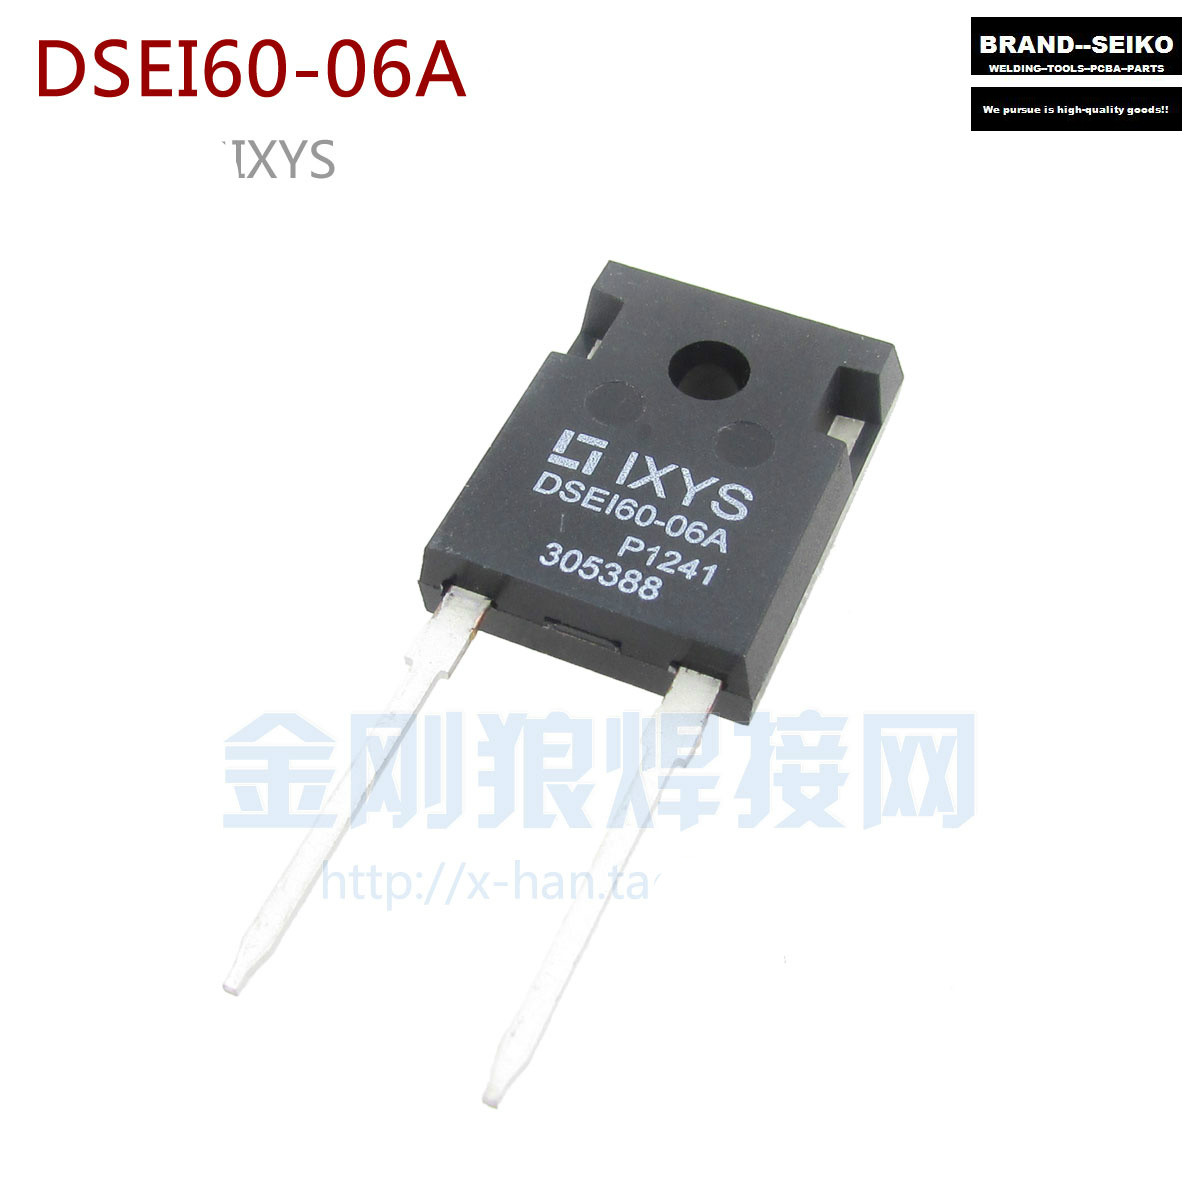 ФОТО 10pcs/lot Inverter Dc Welding Machine Accessories Ixys Dsei60-06a Rectifier Diode 600v 60a